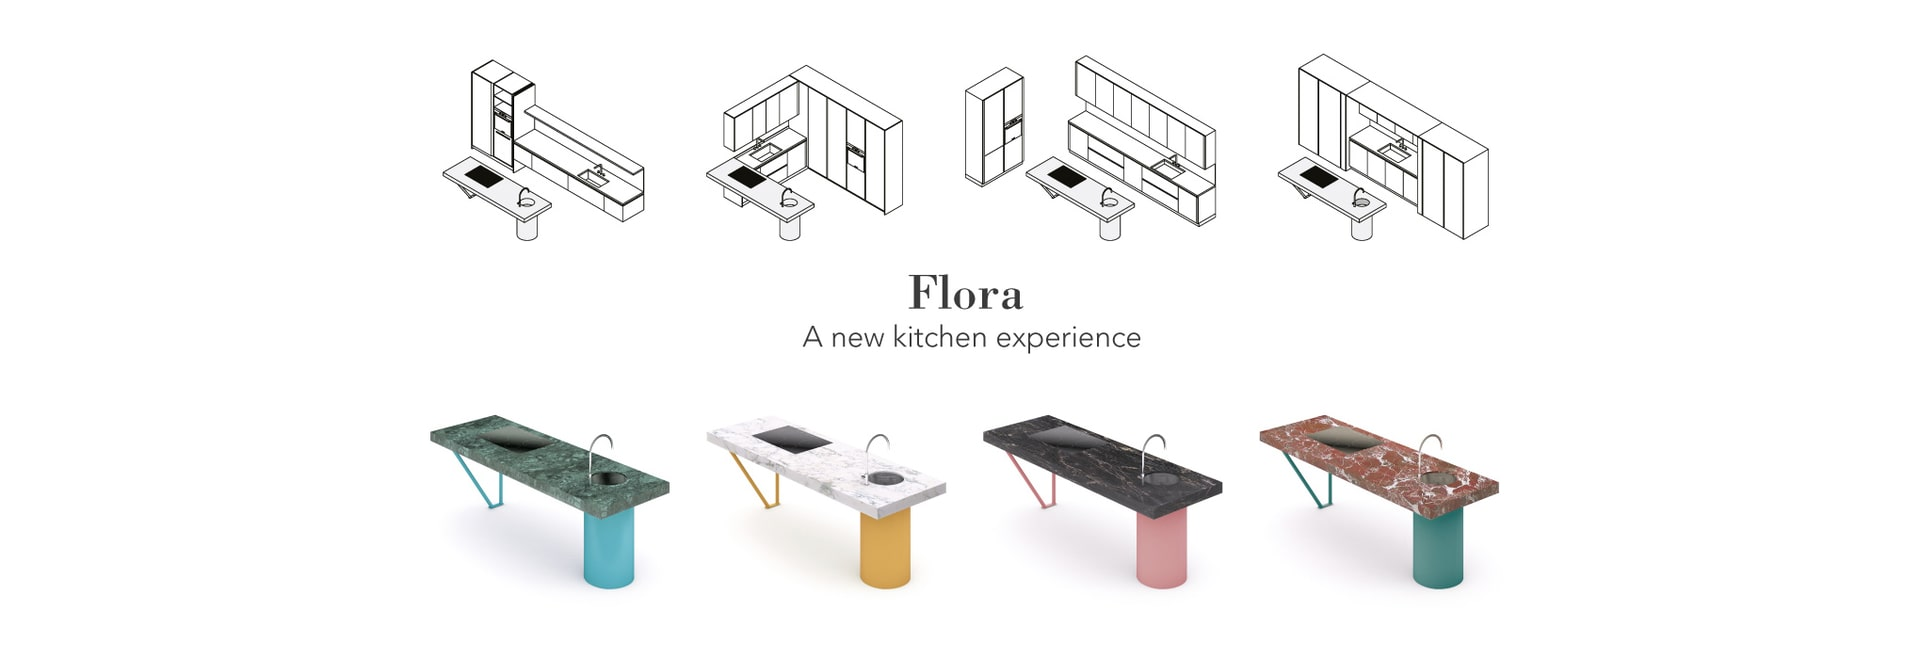 Flora: a new kitchen experience